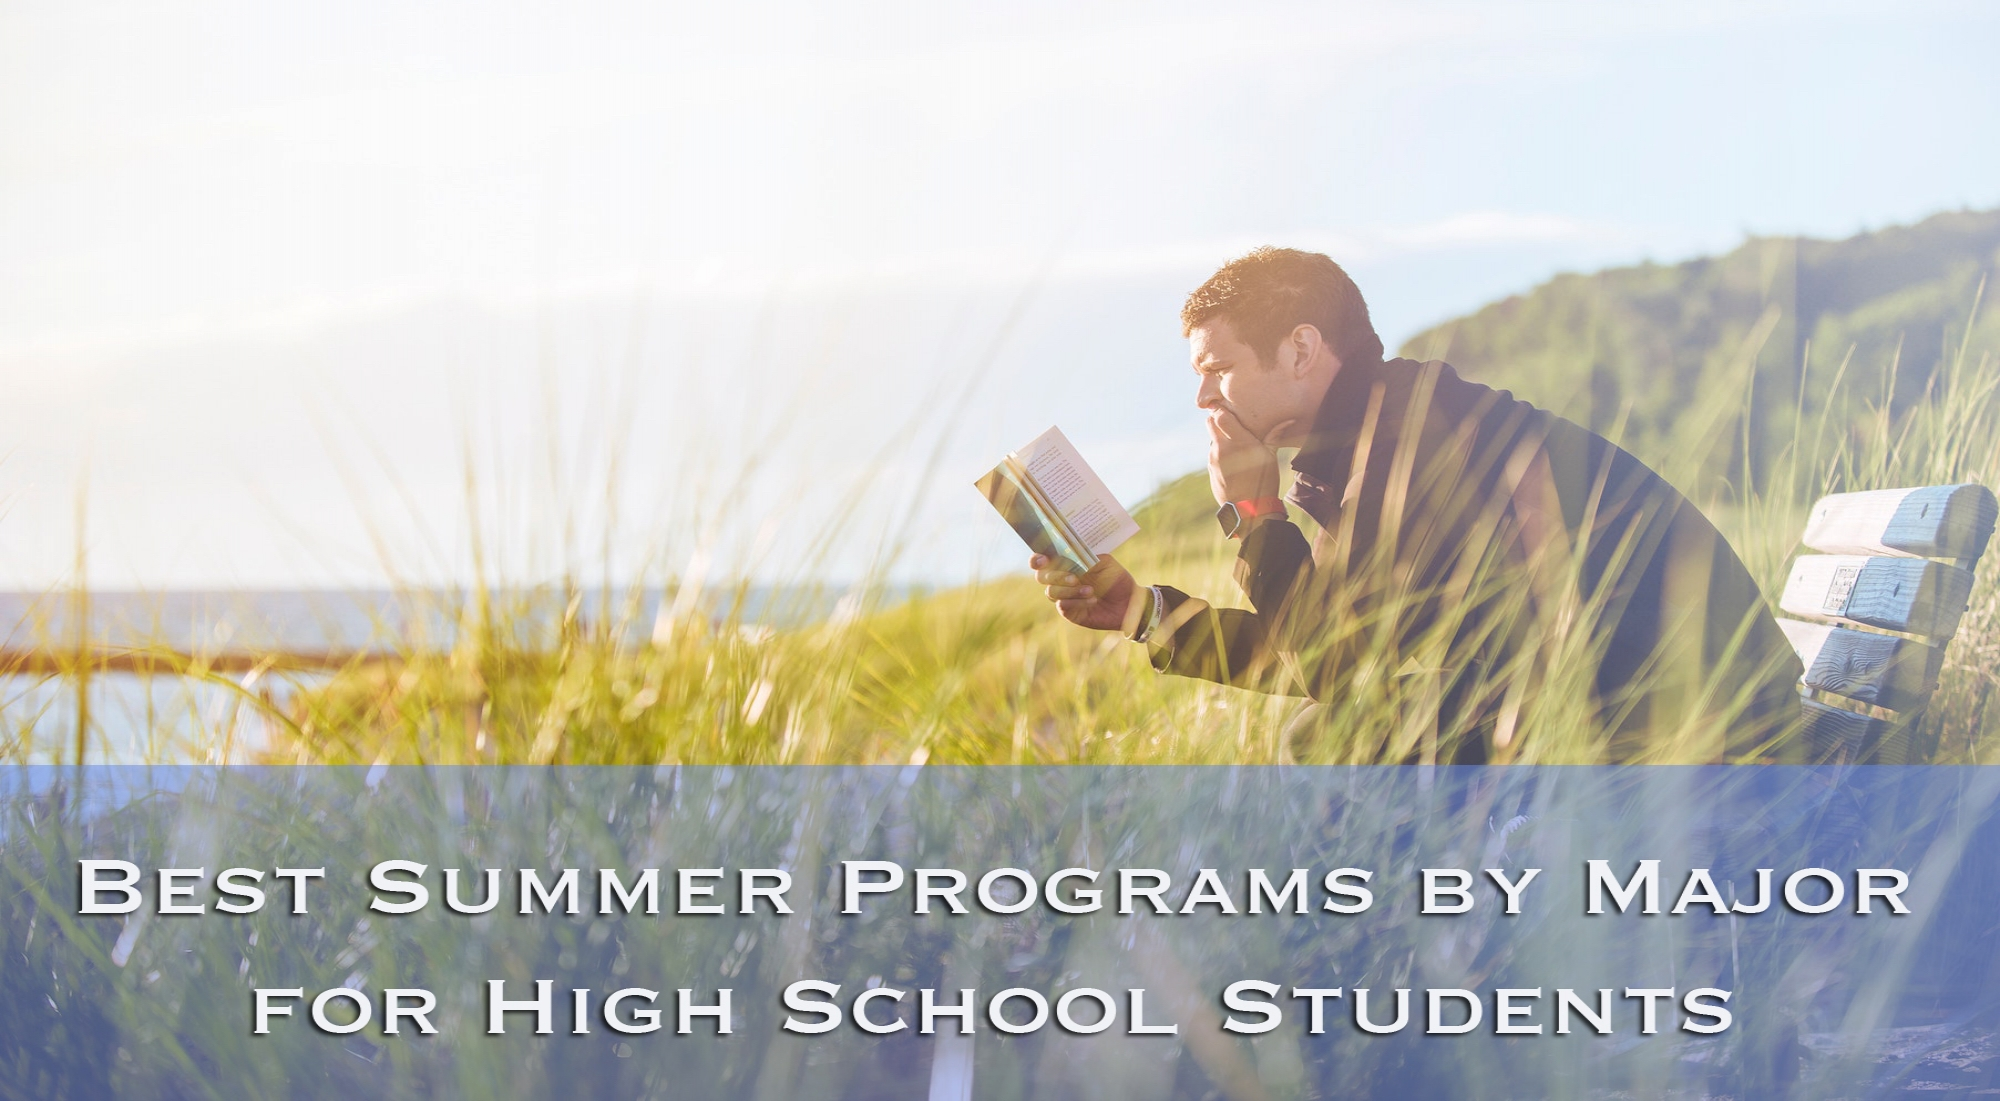 Best Summer Programs for High School Students (By Future Major)